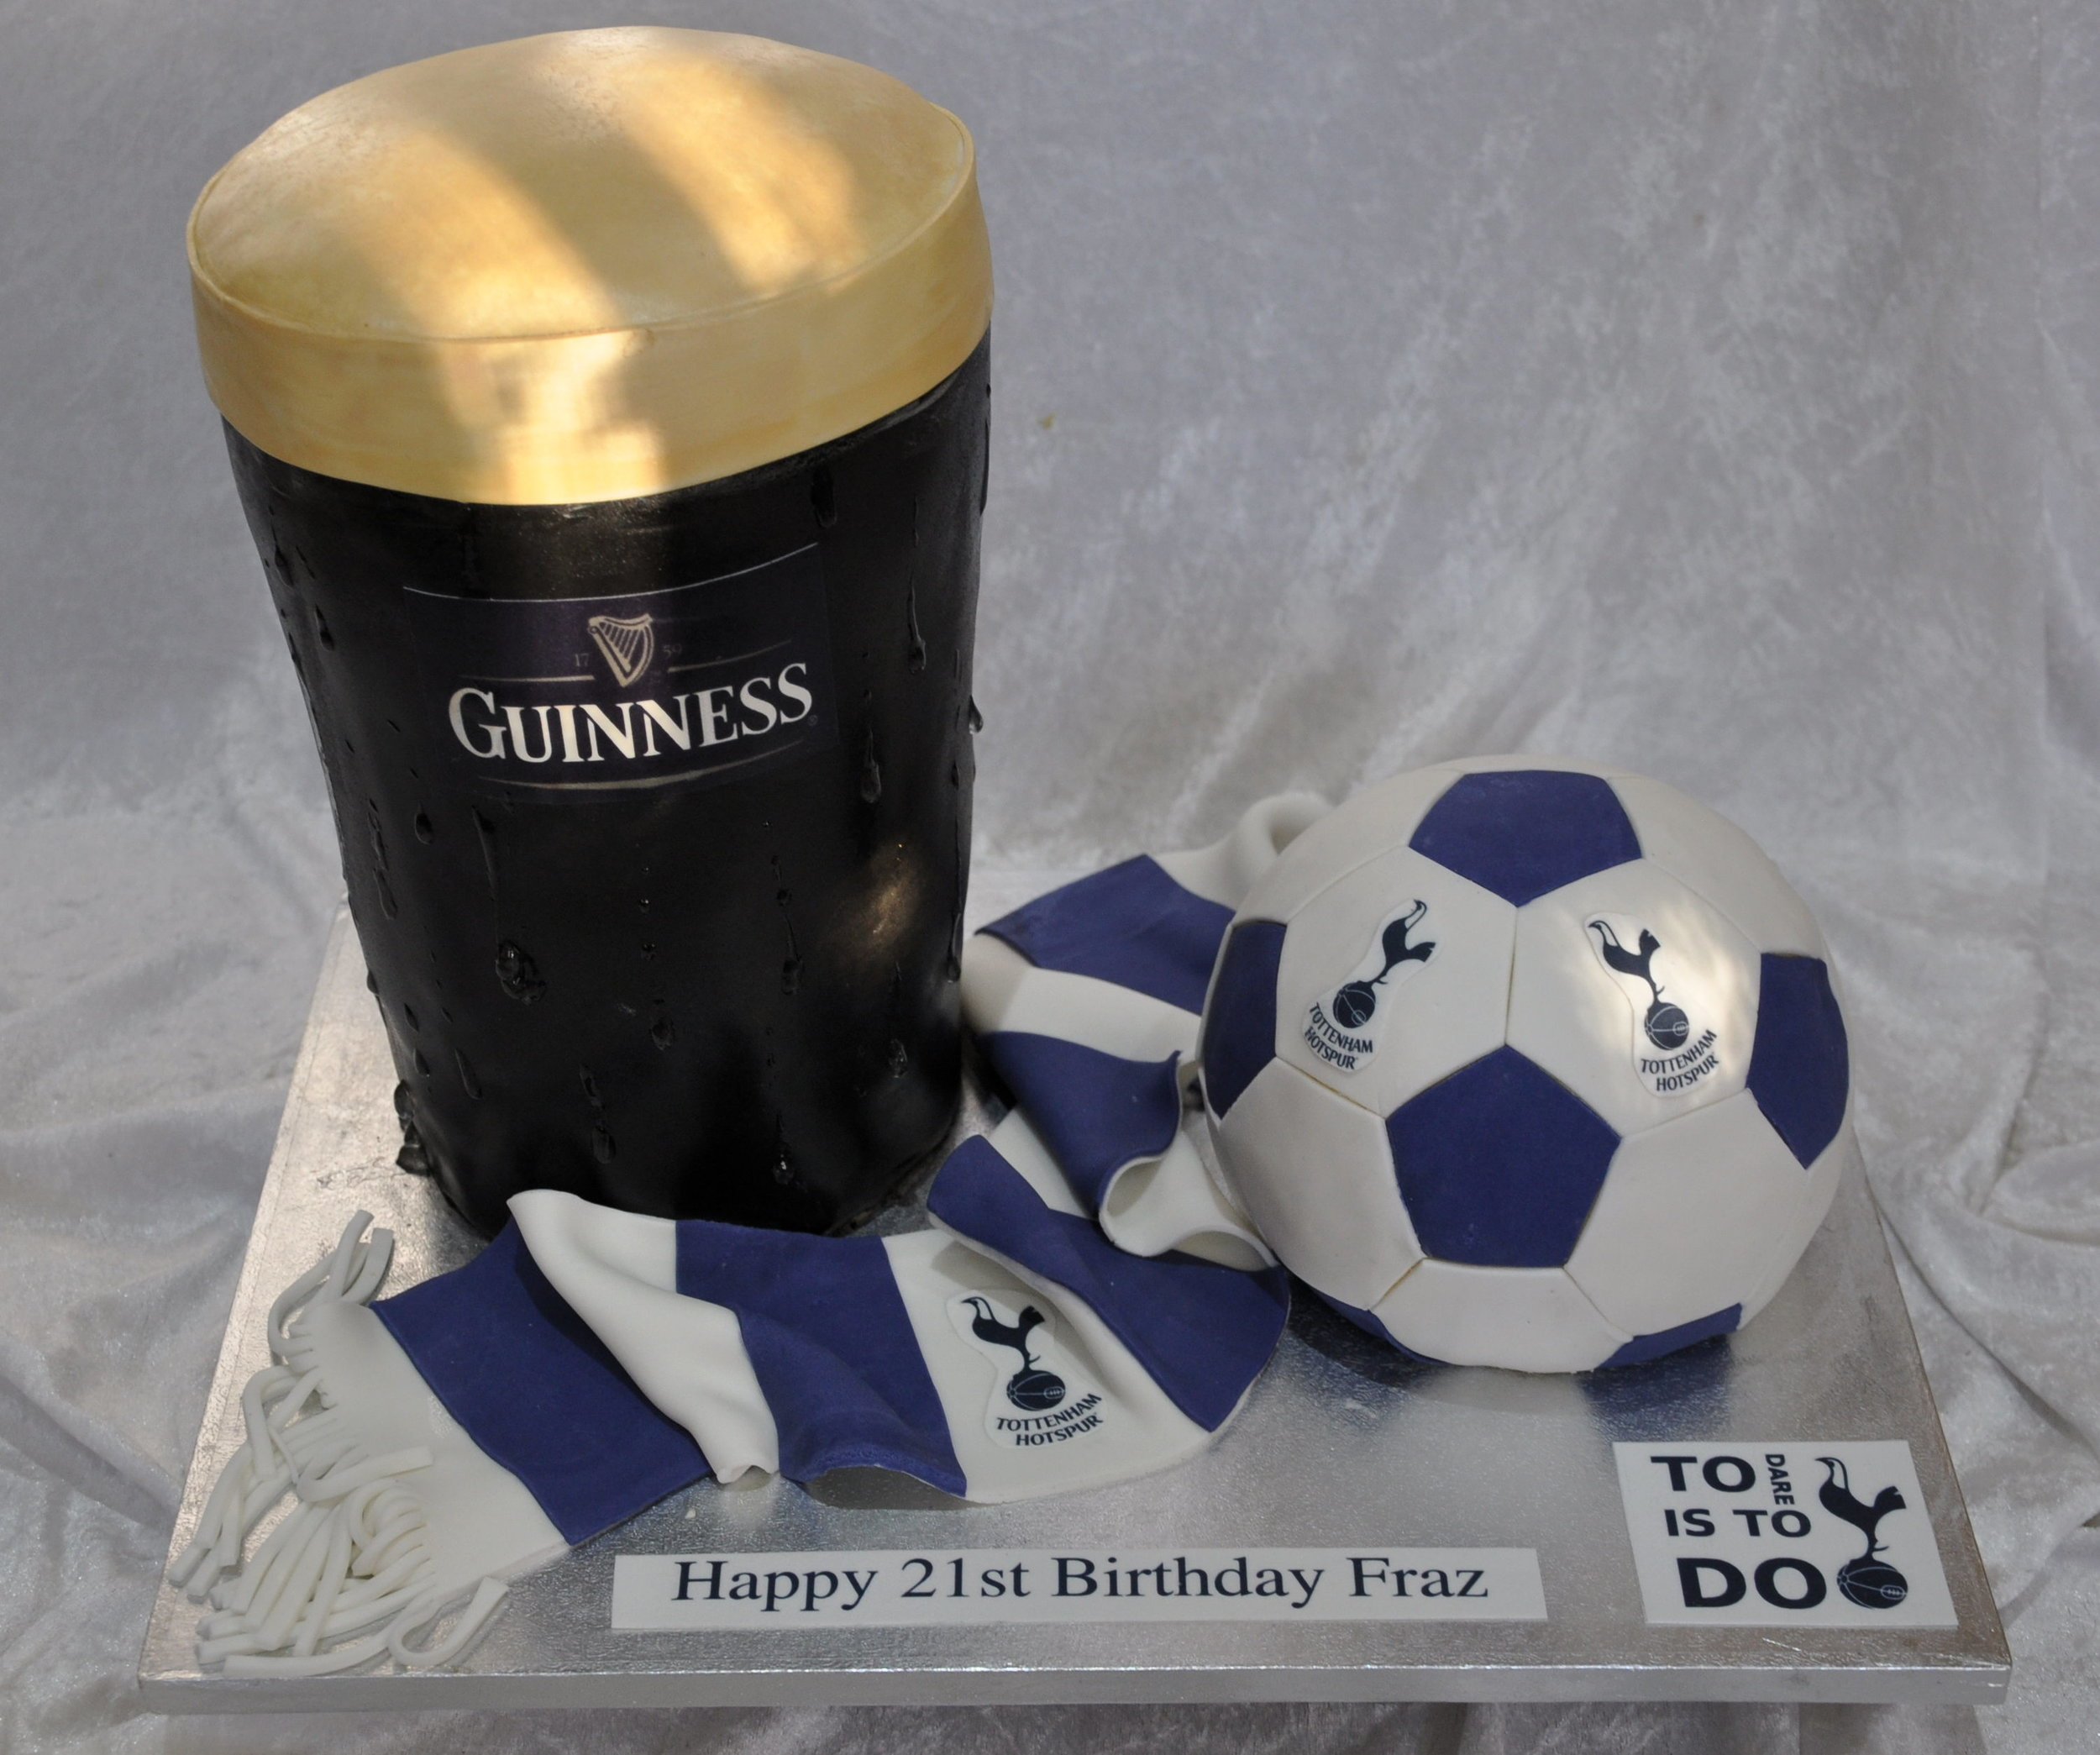 Pint and footy - Super fun over sized standing Guinness glass and footy cake, just right for this young football fan! Delicious in any flavour our Guinness glass is complete with a frothy head and little streams of cold condensation running down the side of the cool glass. So inviting and so tempting, whether the real thing – or as a yummy chocolate marble cake!